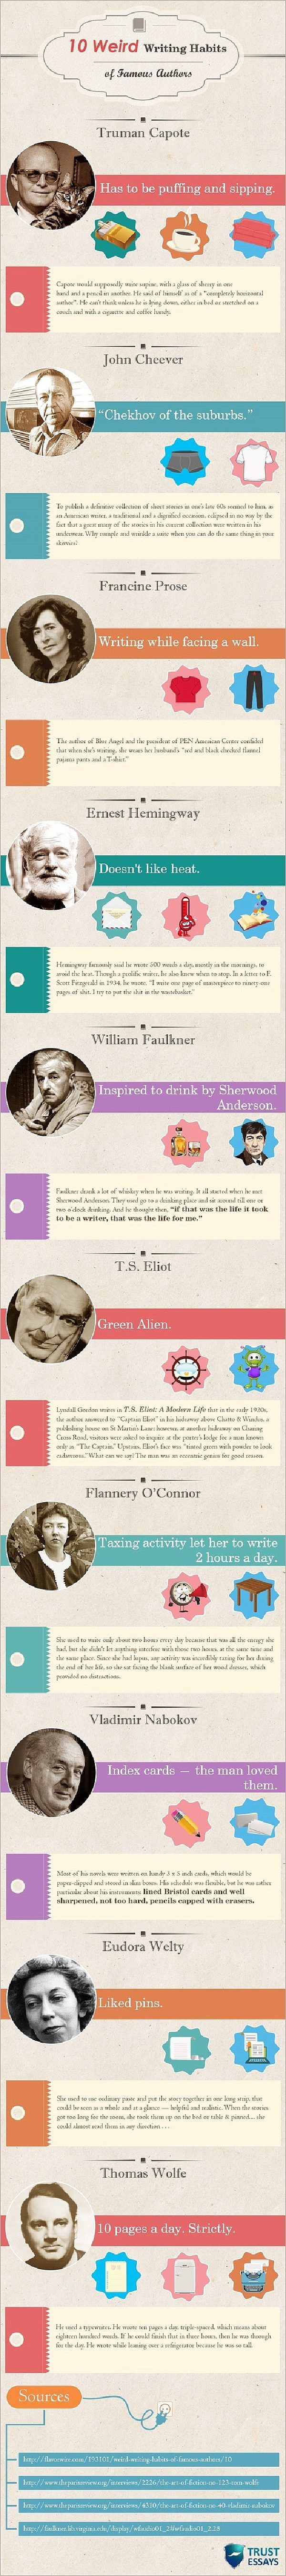 Famous #authors and their weird writing habits #infographic